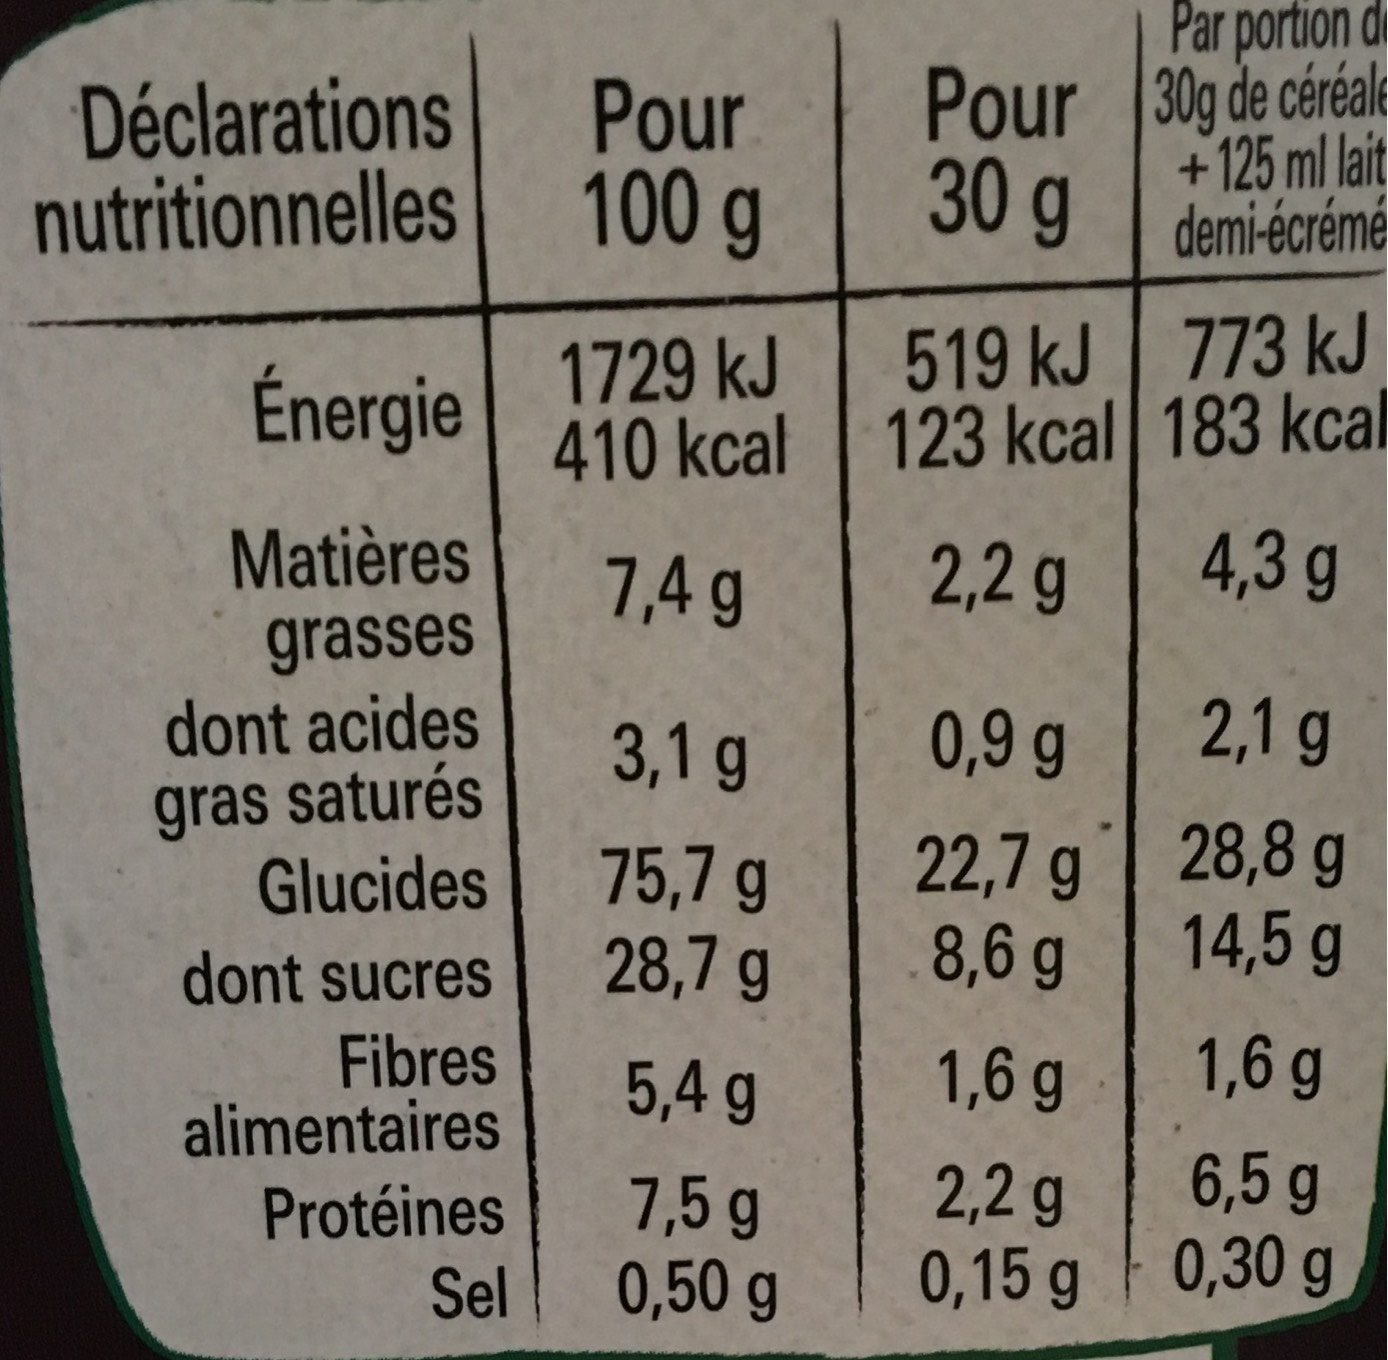 Lion caramel & chocolat - Nutrition facts - fr